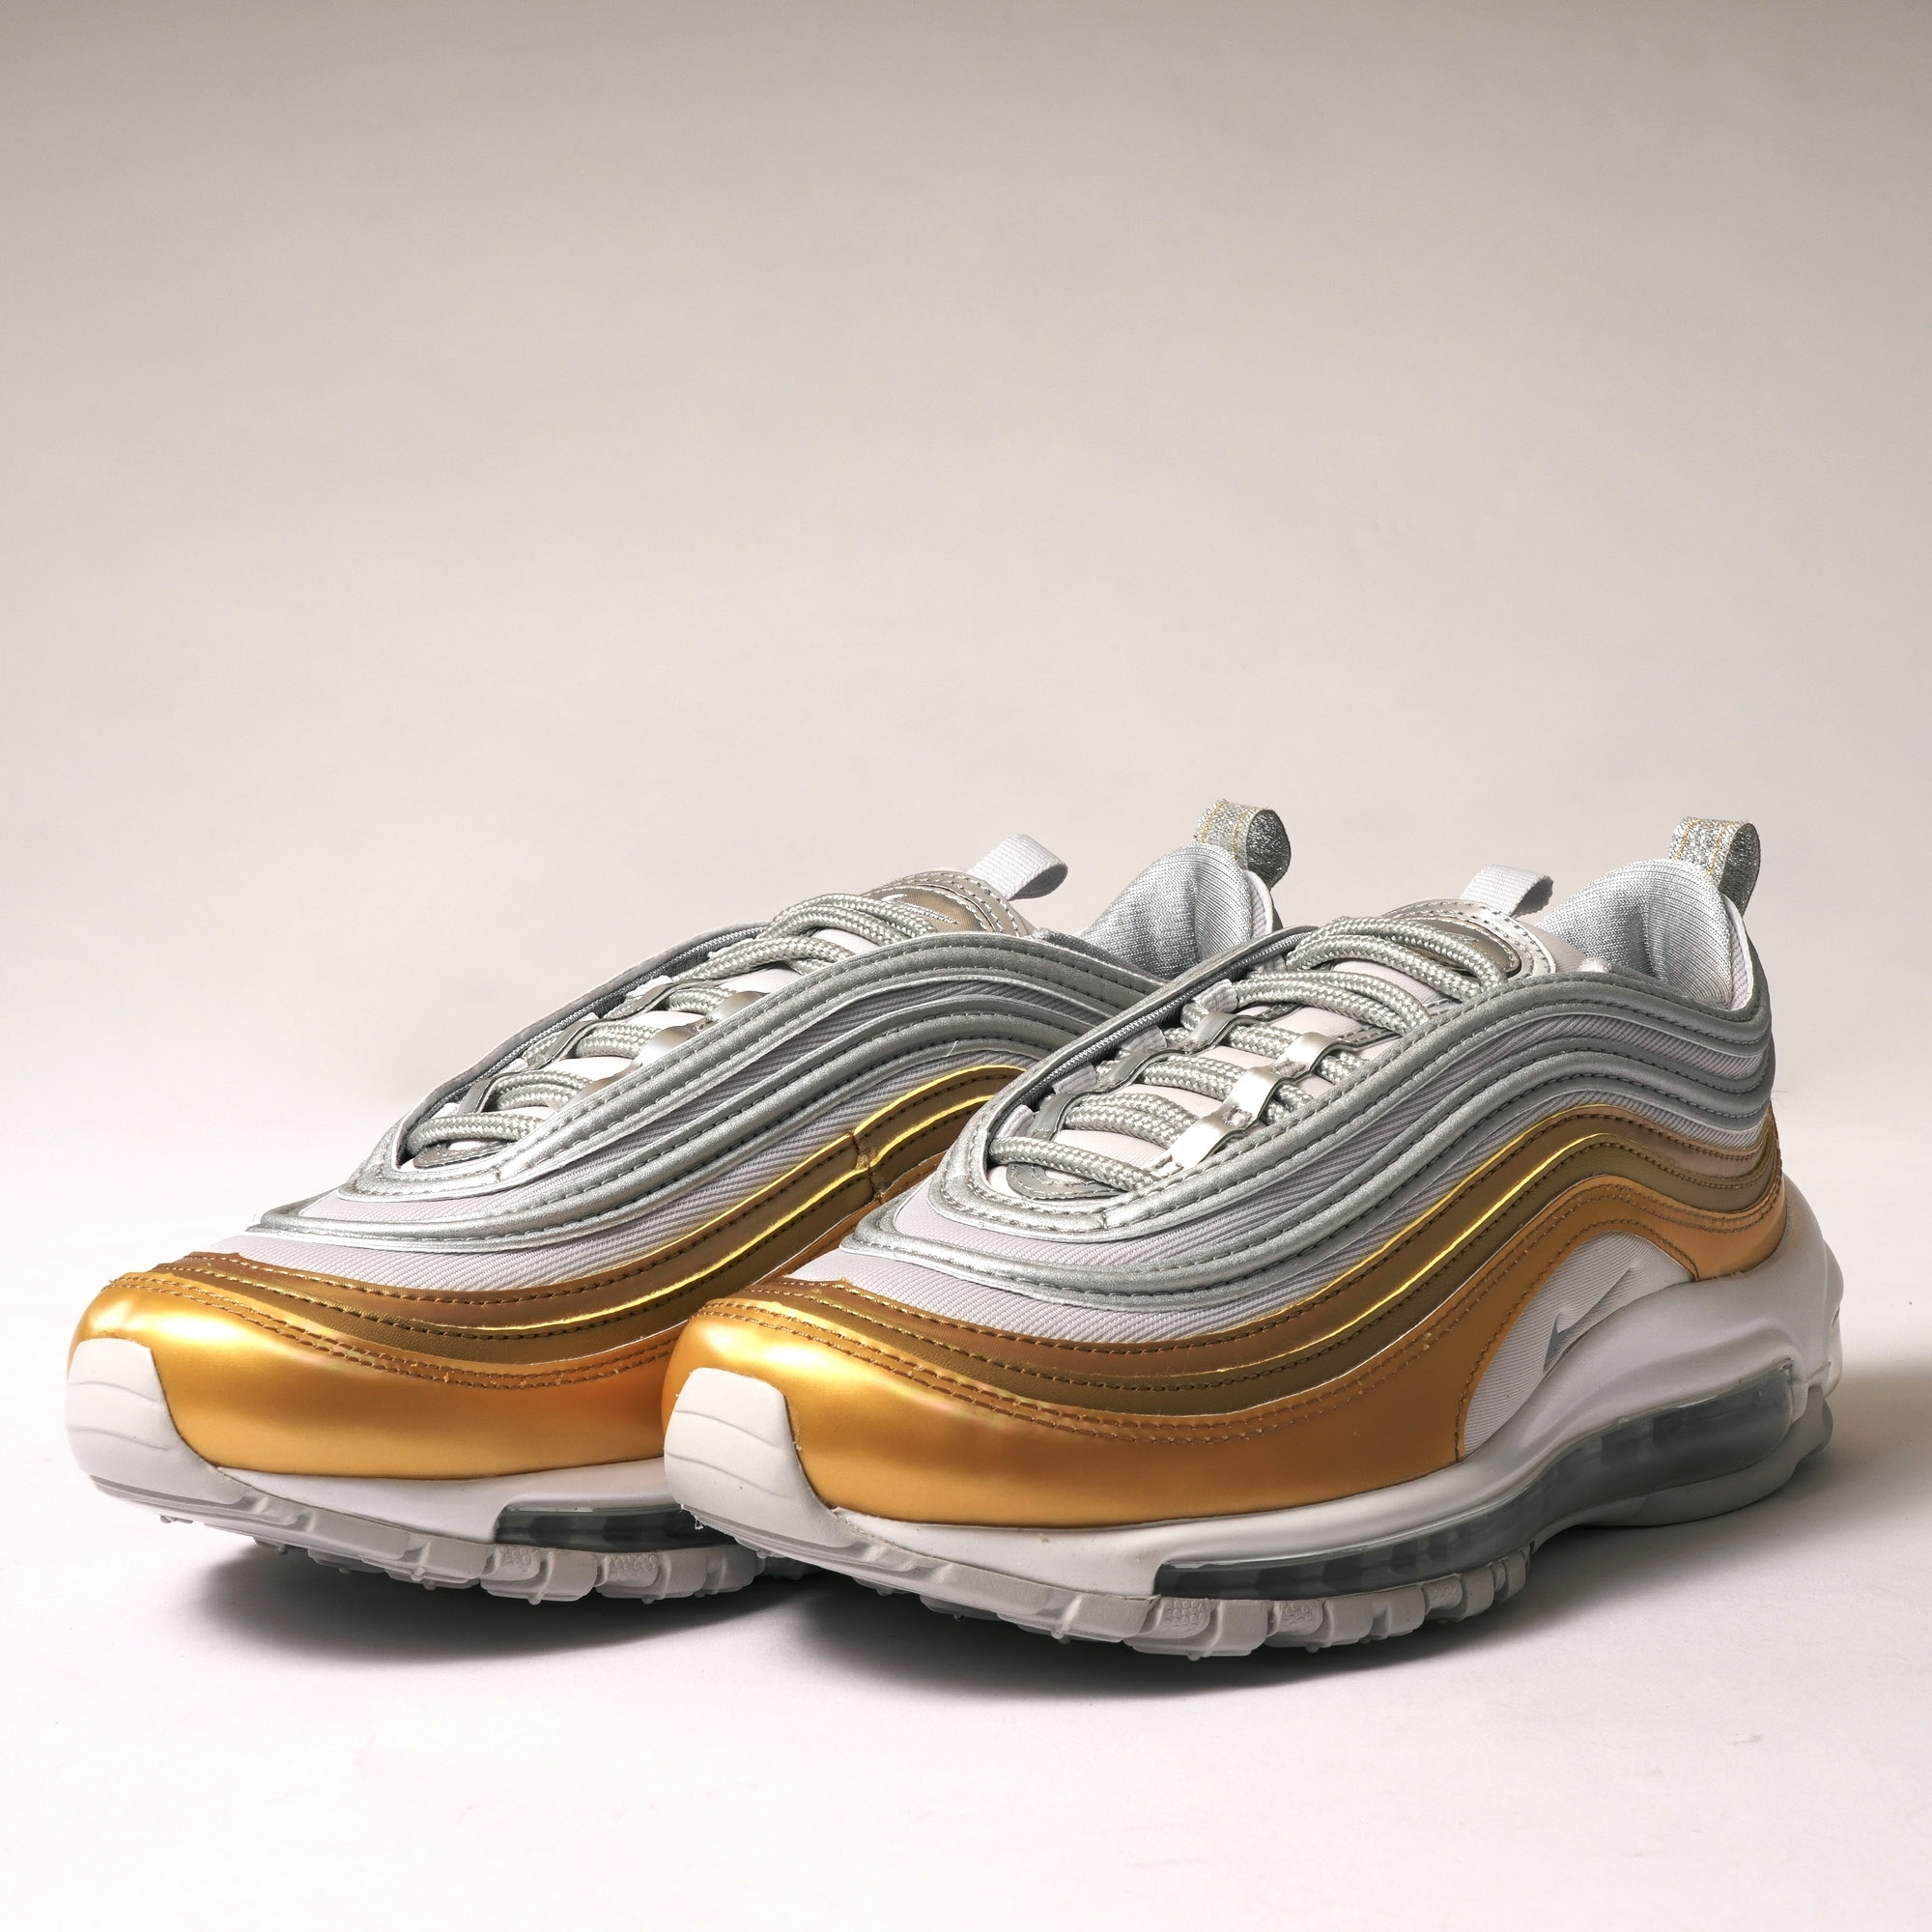 new concept b586a d8b75 Air Max 97 SE - Grey, Silver, Gold & White